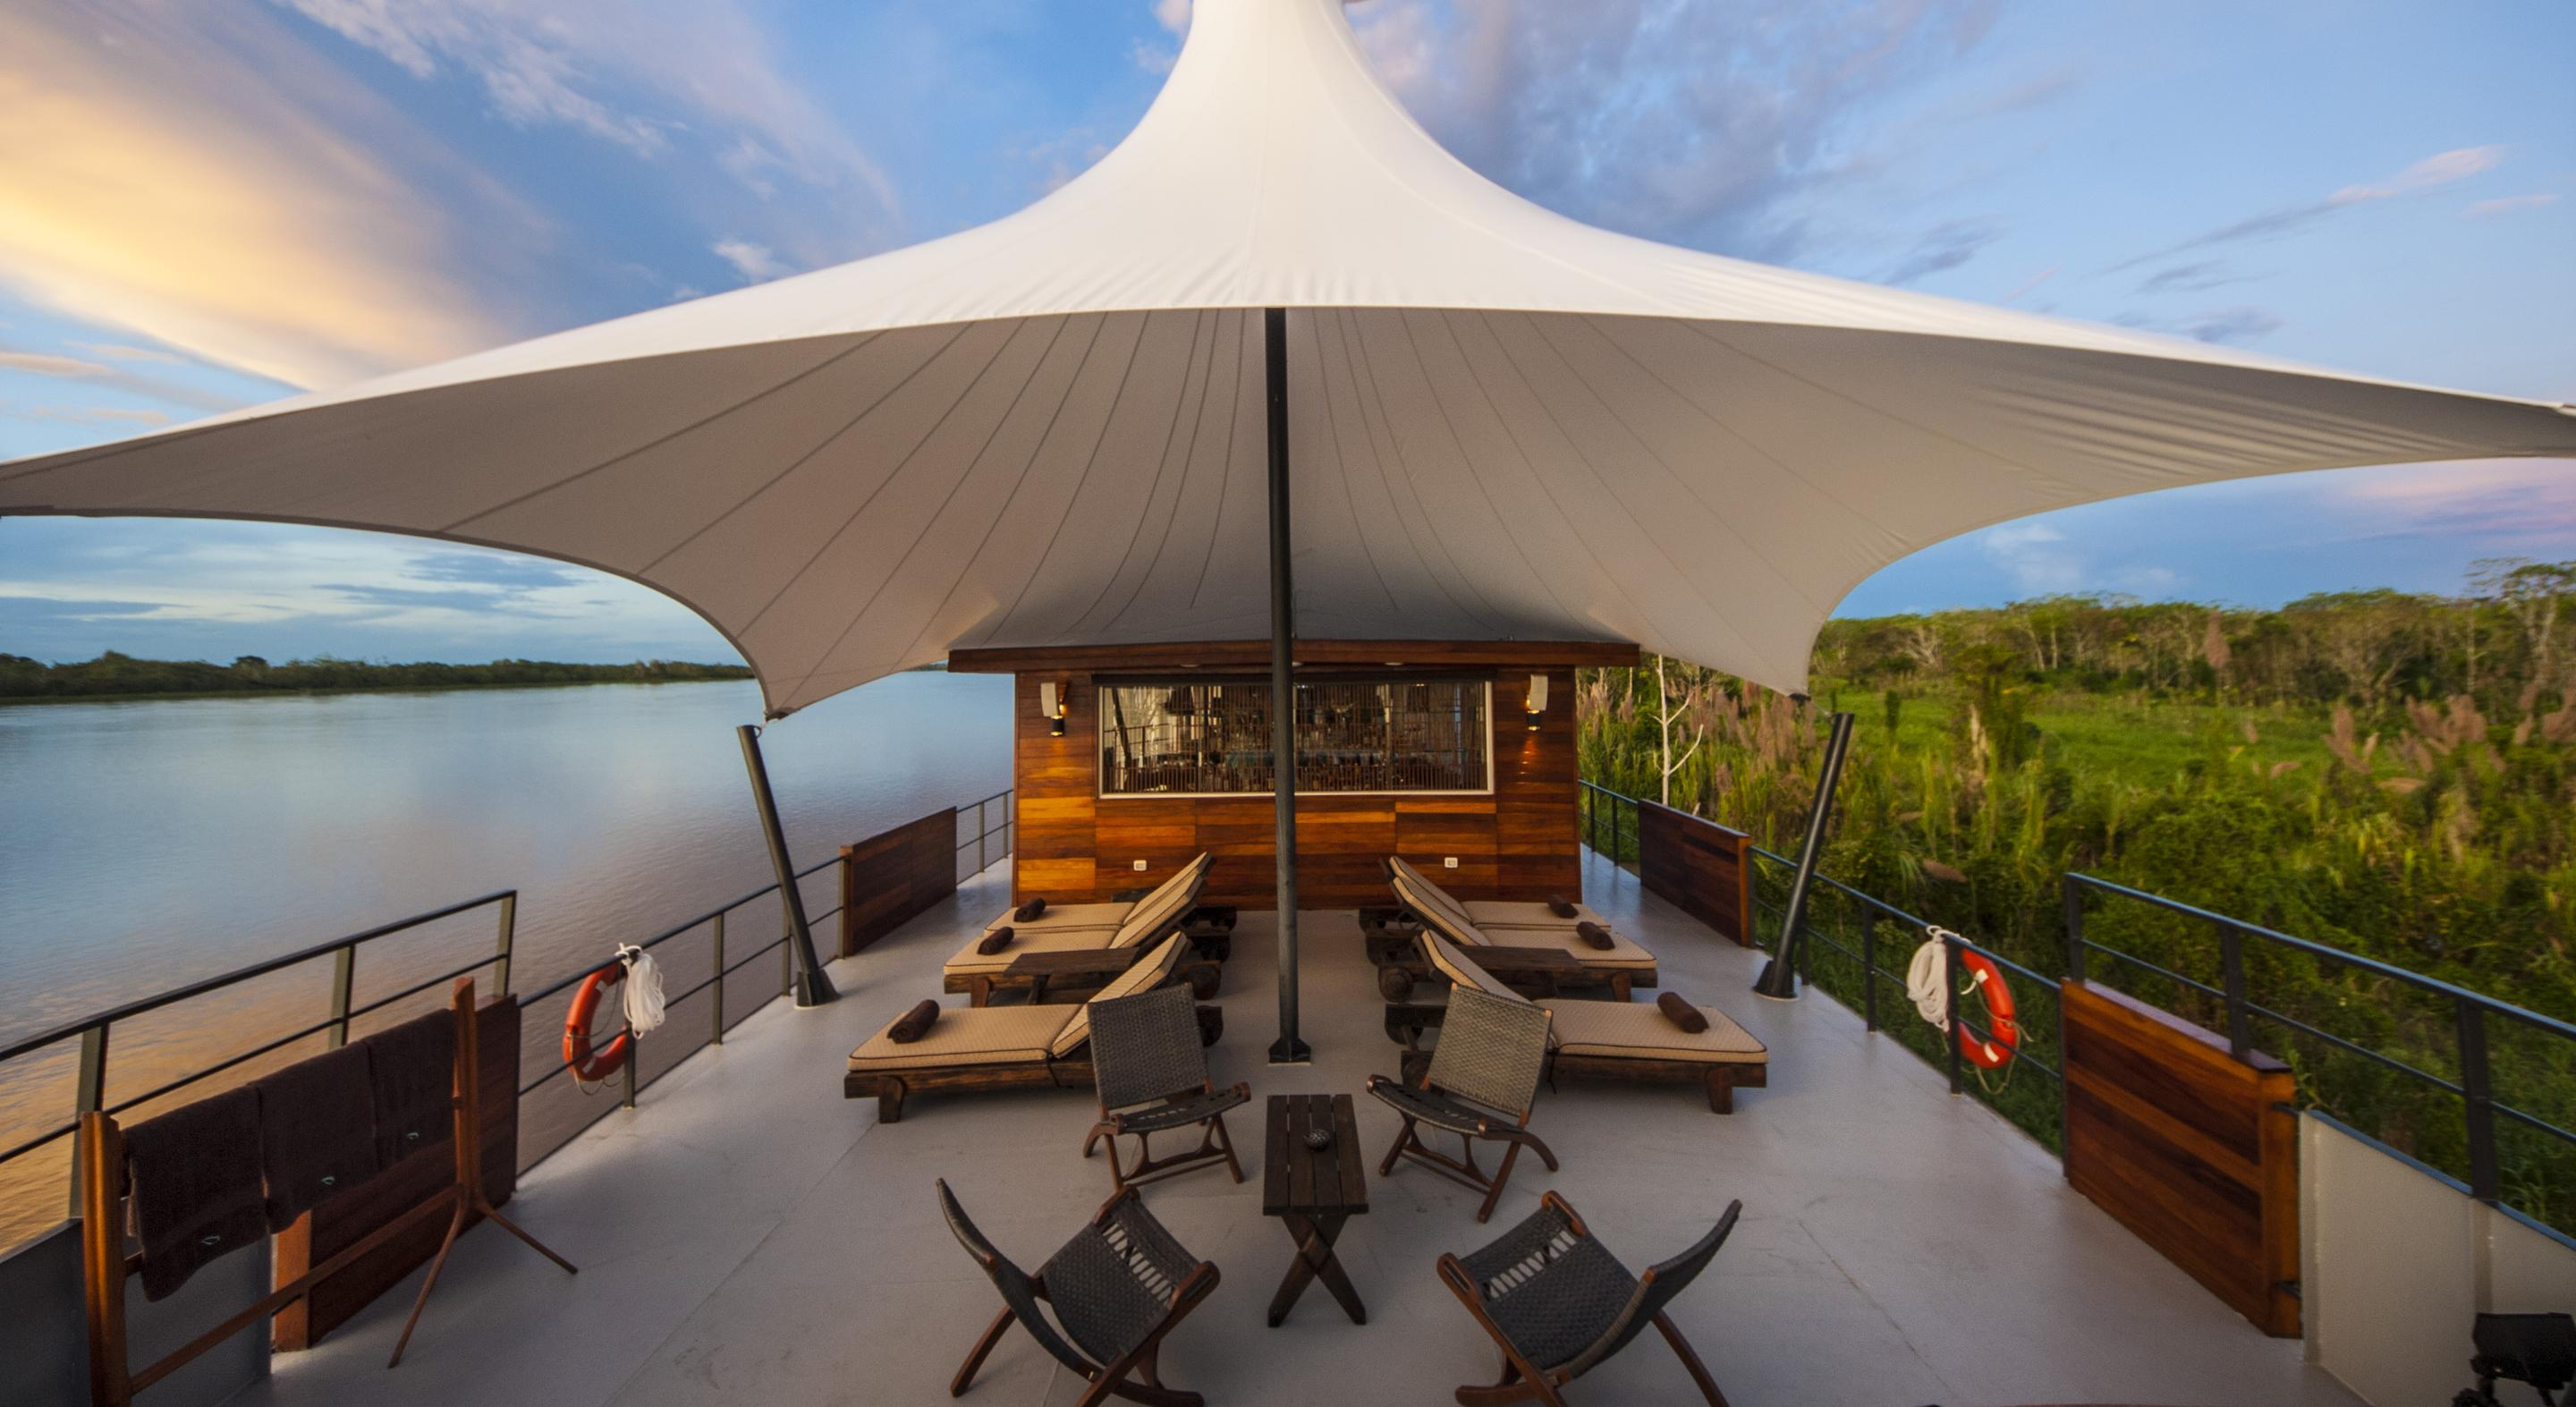 New 8_2015 Aria Amazon Outdoor Lounge - High Resolution